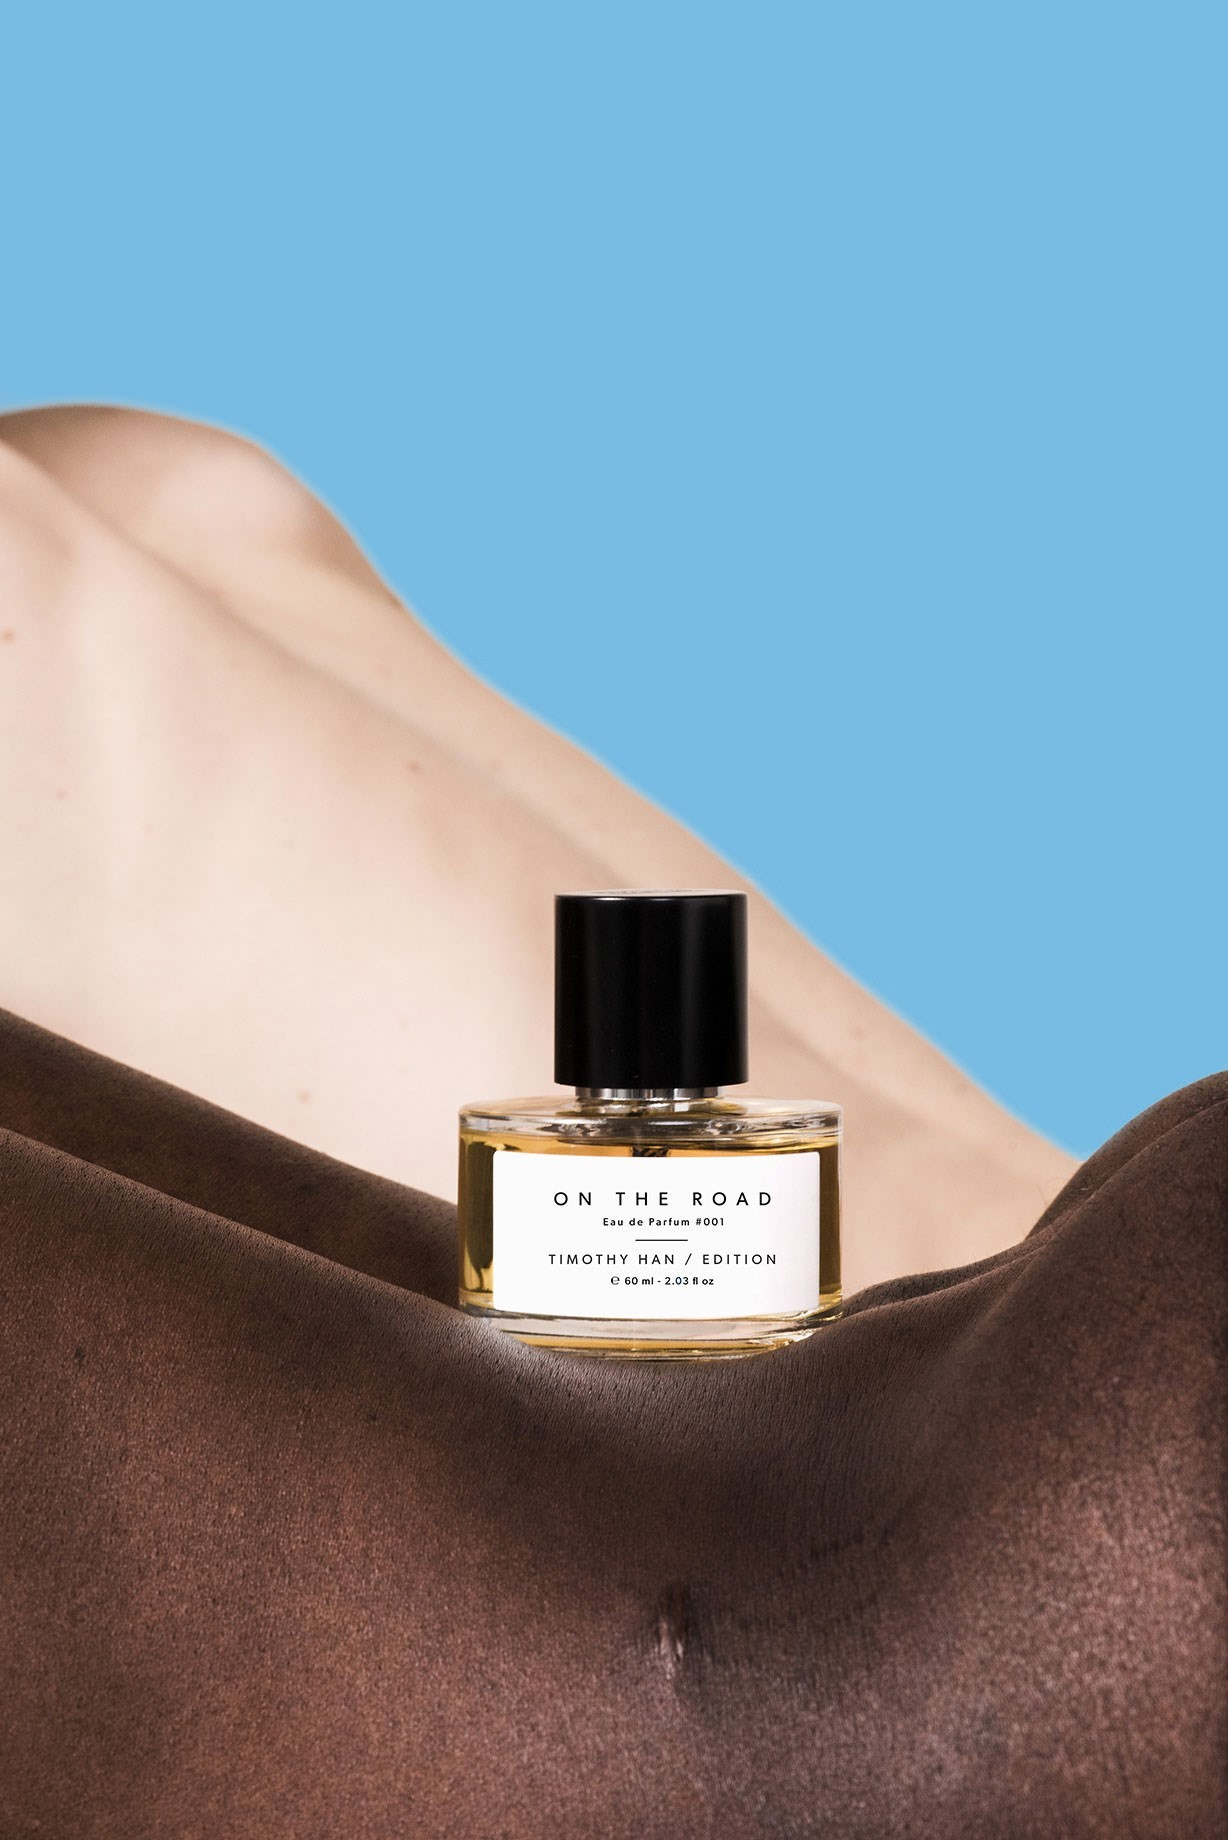 Meet The Brand Creating Fragrances Inspired By Icons Of Literature